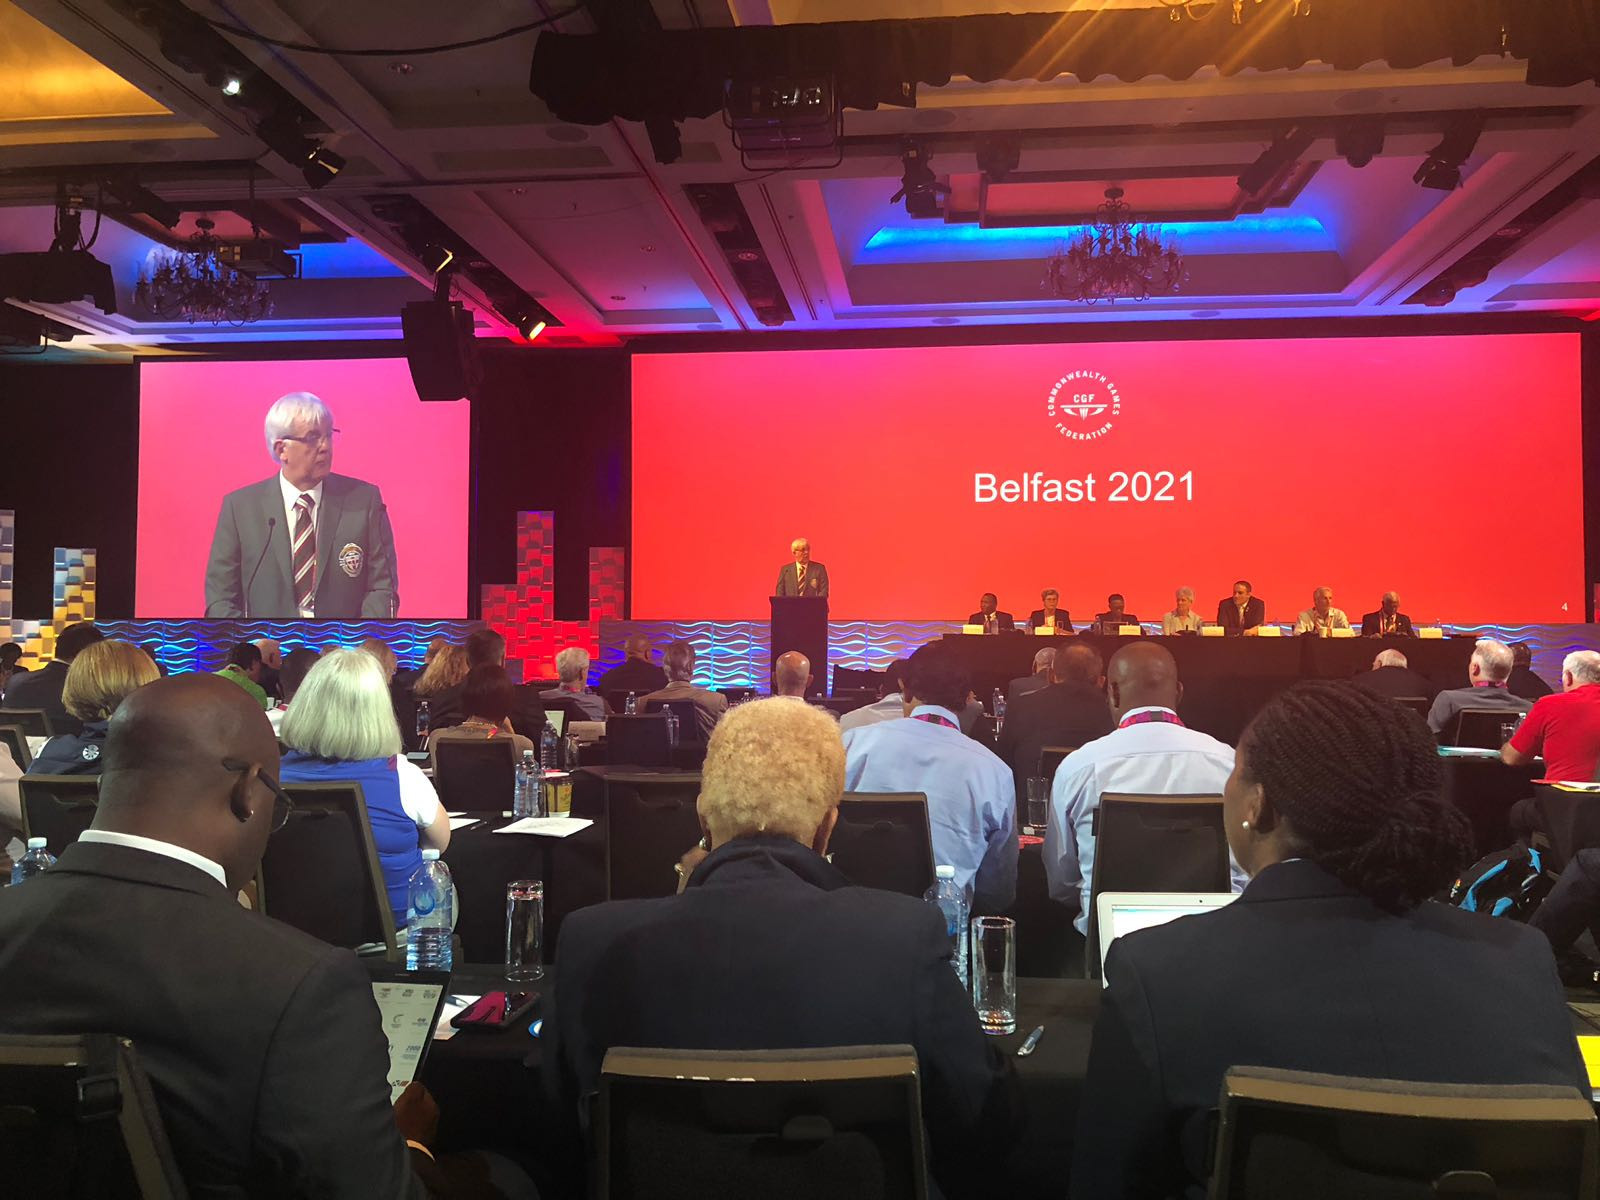 Belfast 2021 given more time to secure funding needed to host Commonwealth Youth Games